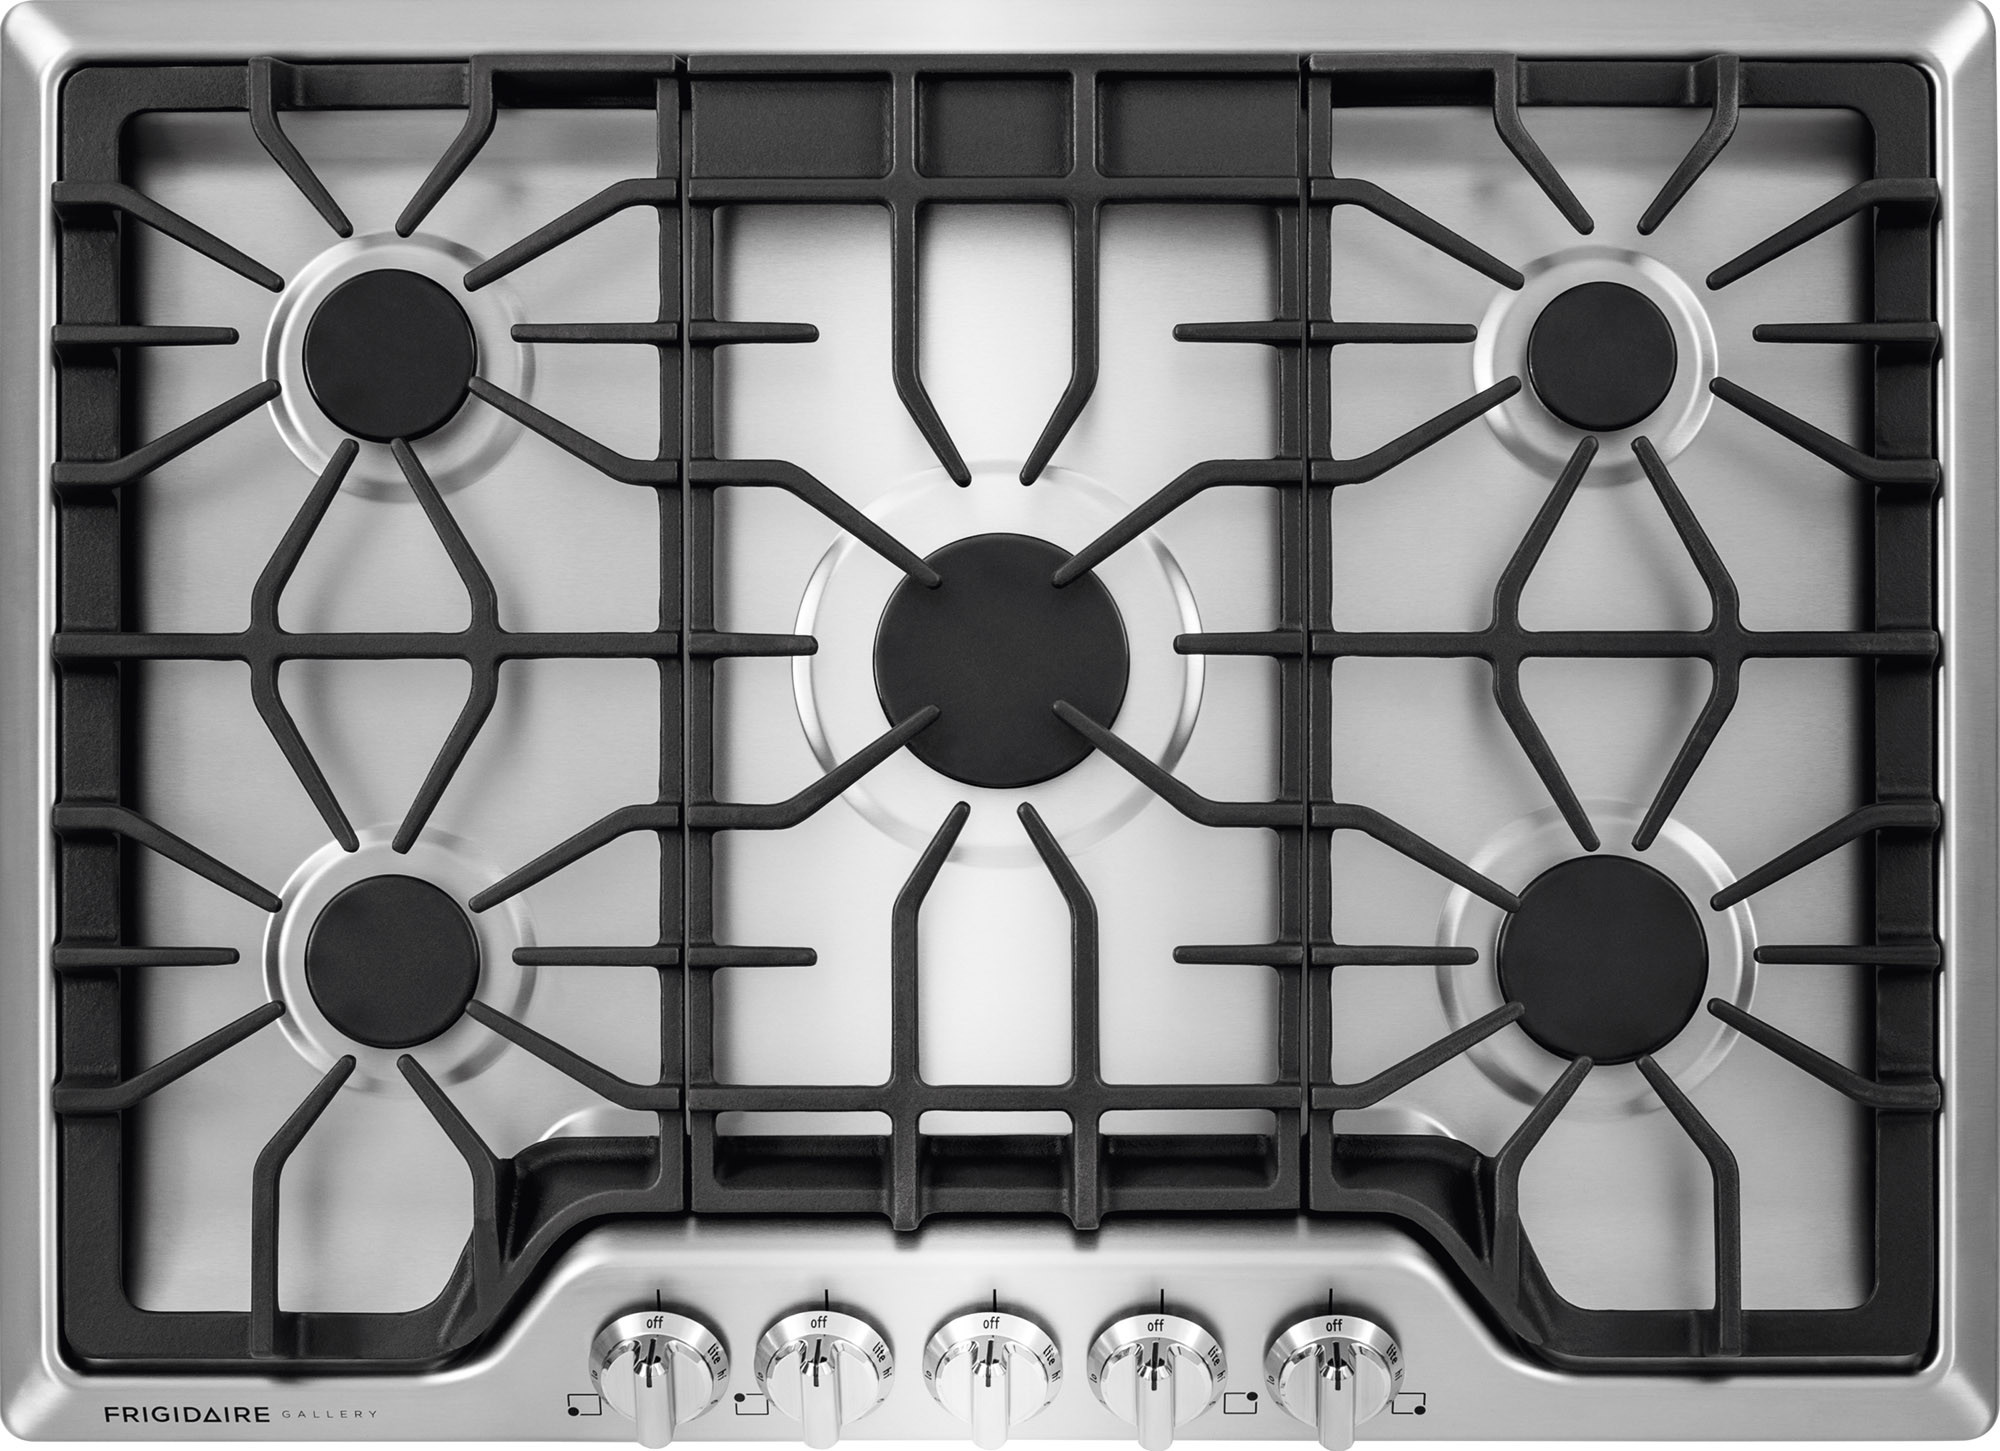 Frigidaire FGGC3047QS 30 Inch Gas Cooktop with LP Conversion Option, Seamless Recessed Burners, SpillSafe®, Angled Front Controls, Continuous Iron Grates, ...